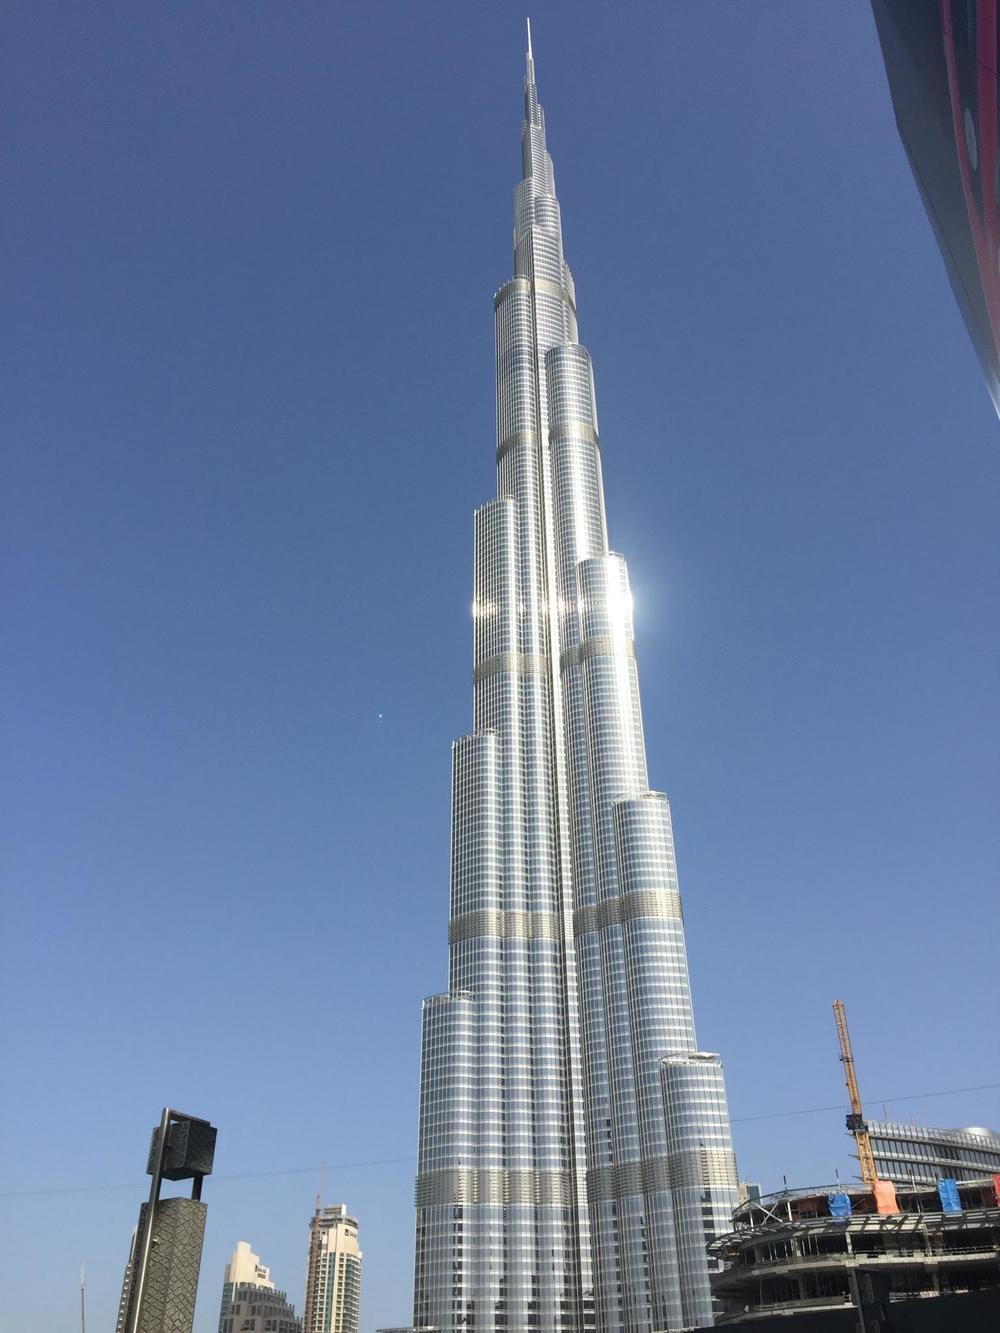 The Burj Al Khalifa